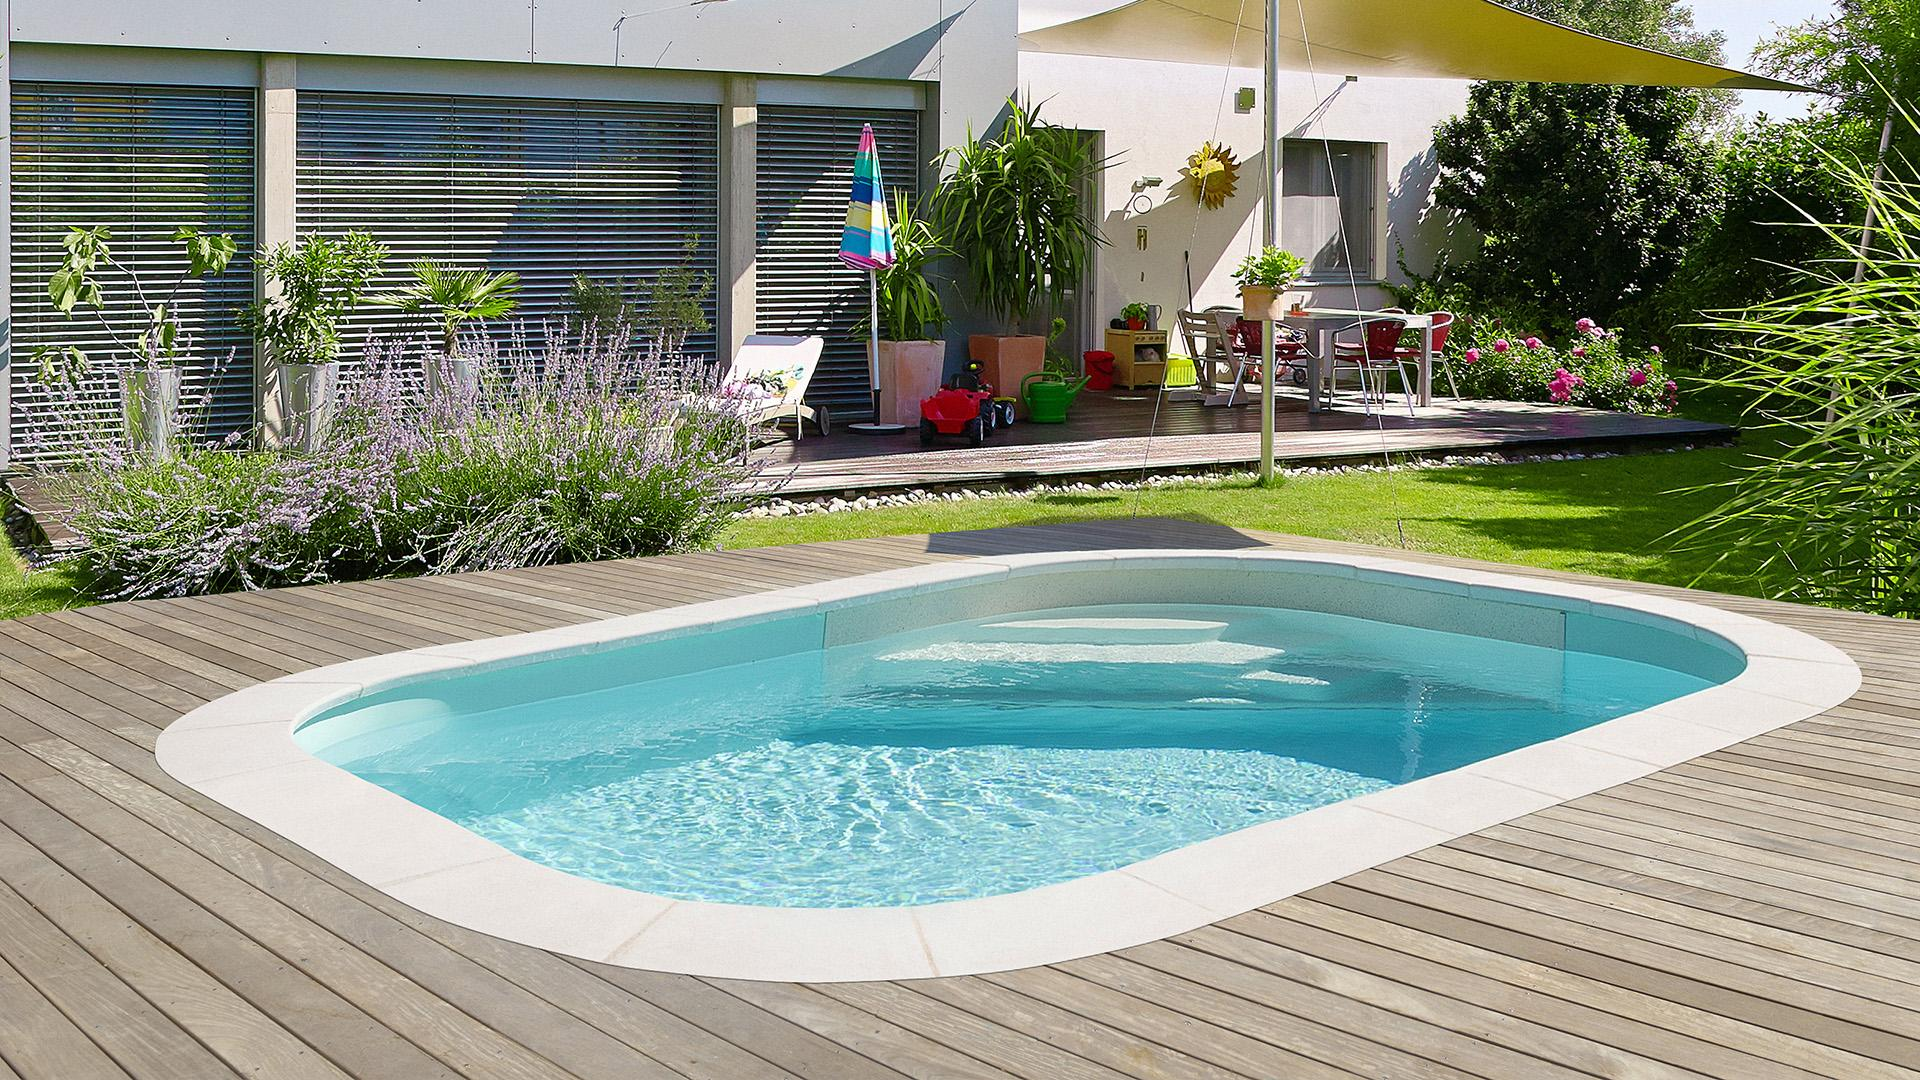 Mini Pool Terrasse Mini Pool Terrasse Awesome Mini Pool Fa R Terrasse Schan Das